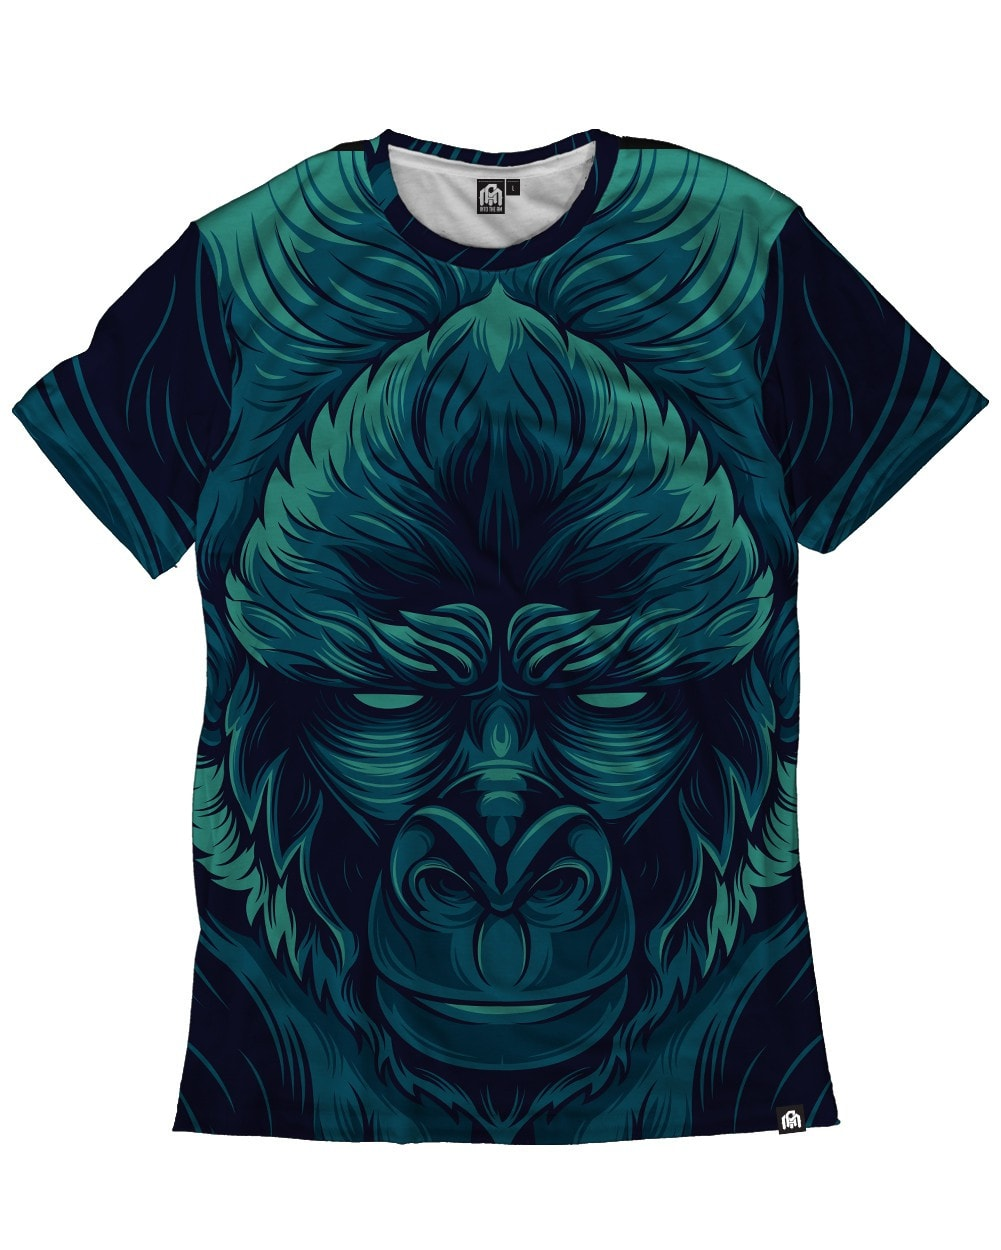 Gorilla All Over Print Shirt